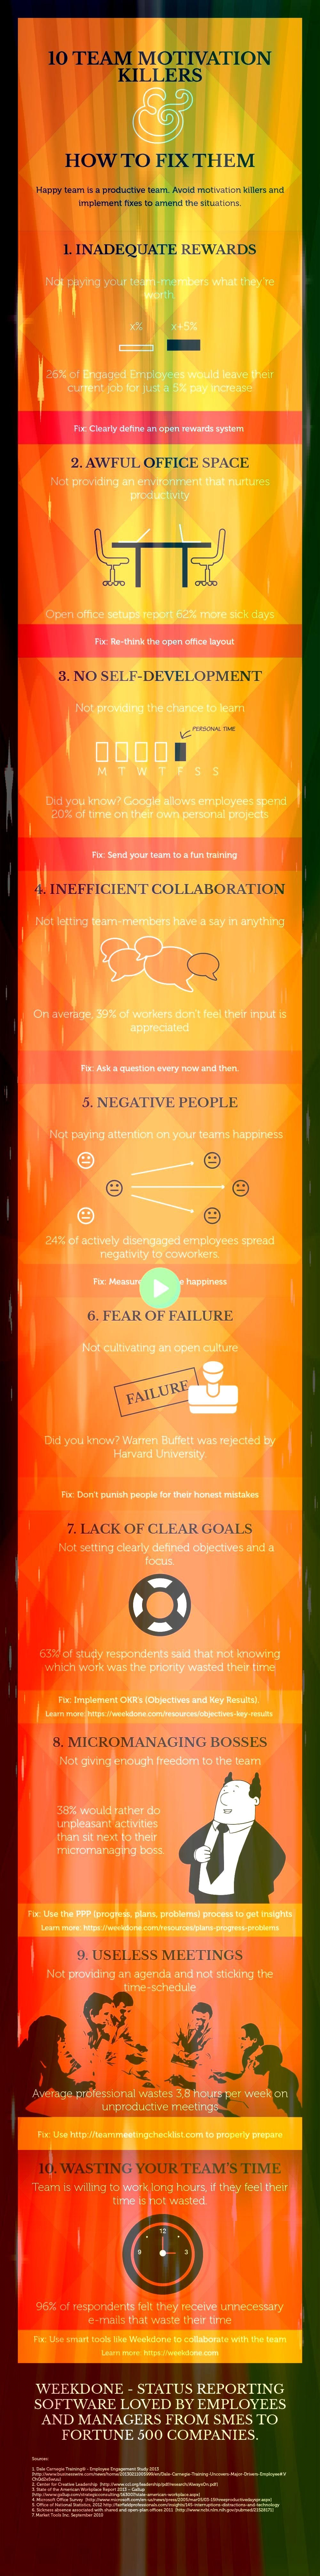 10 Biggest Motivation Killers and How to Fix Them InfographicThe 10 Biggest Motivation Killers and How to Fix Them Infographic DO YOU HAVE THE 3 MOST CRUCIAL INGREDIENTS...